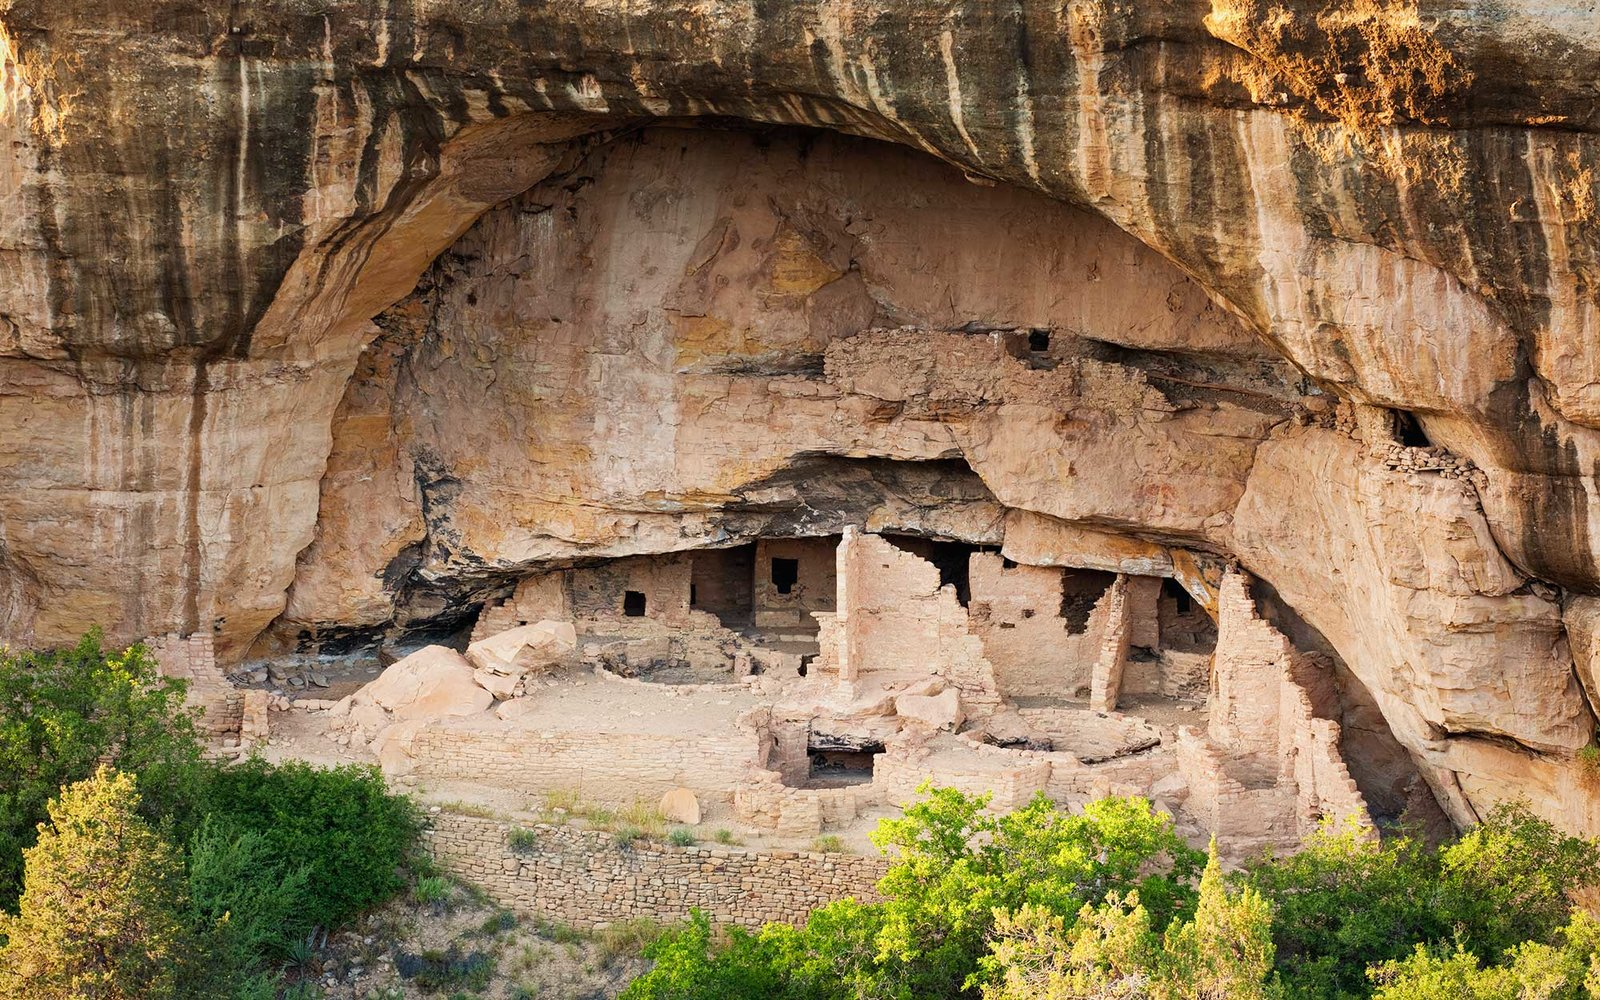 USA, Colorado, Mesa Verde, Mesa Verde National Park, Native American Cliff Dwellings